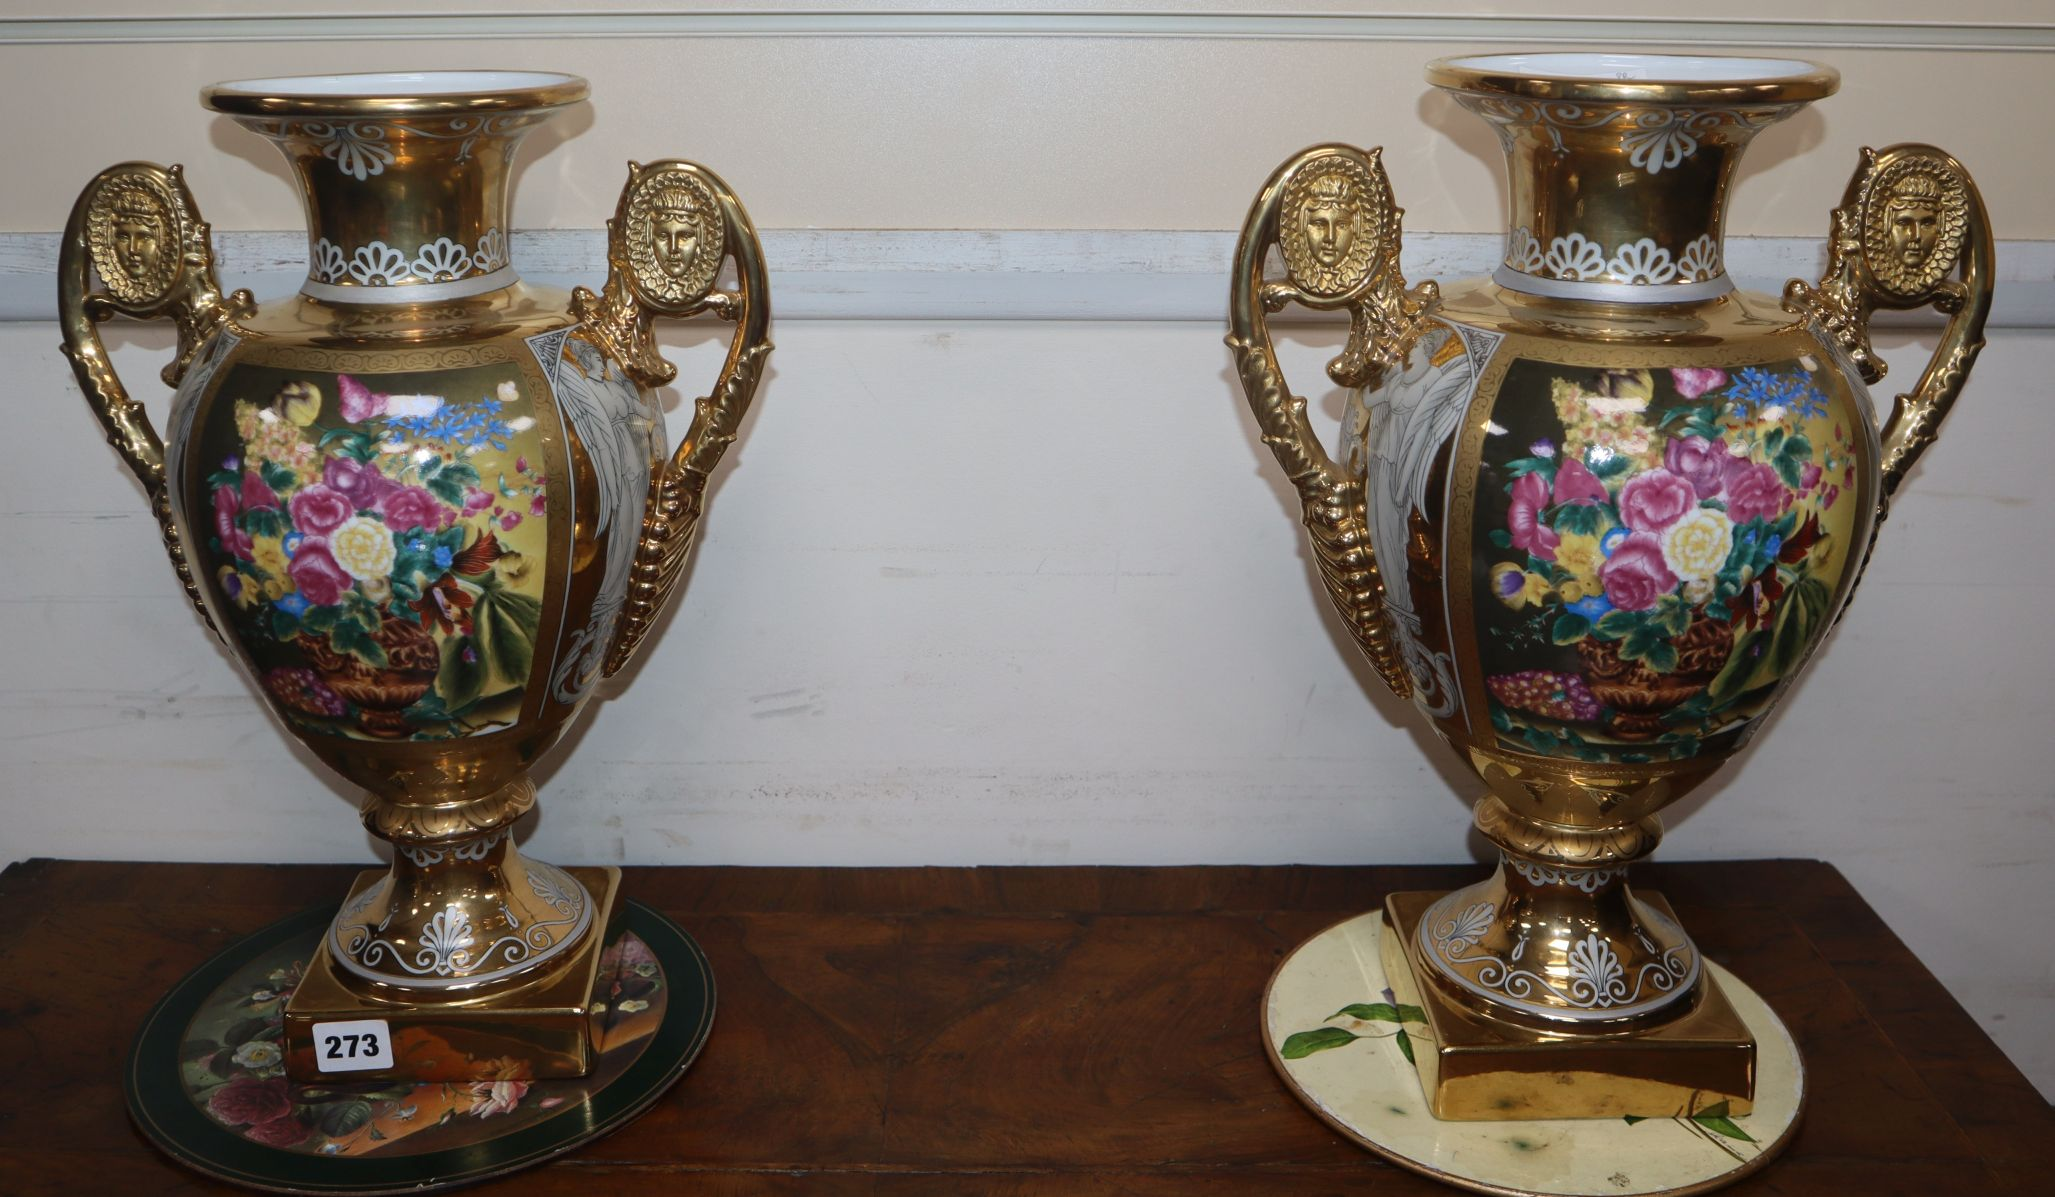 Lot 273 - A pair of Sevres-style porcelain vases